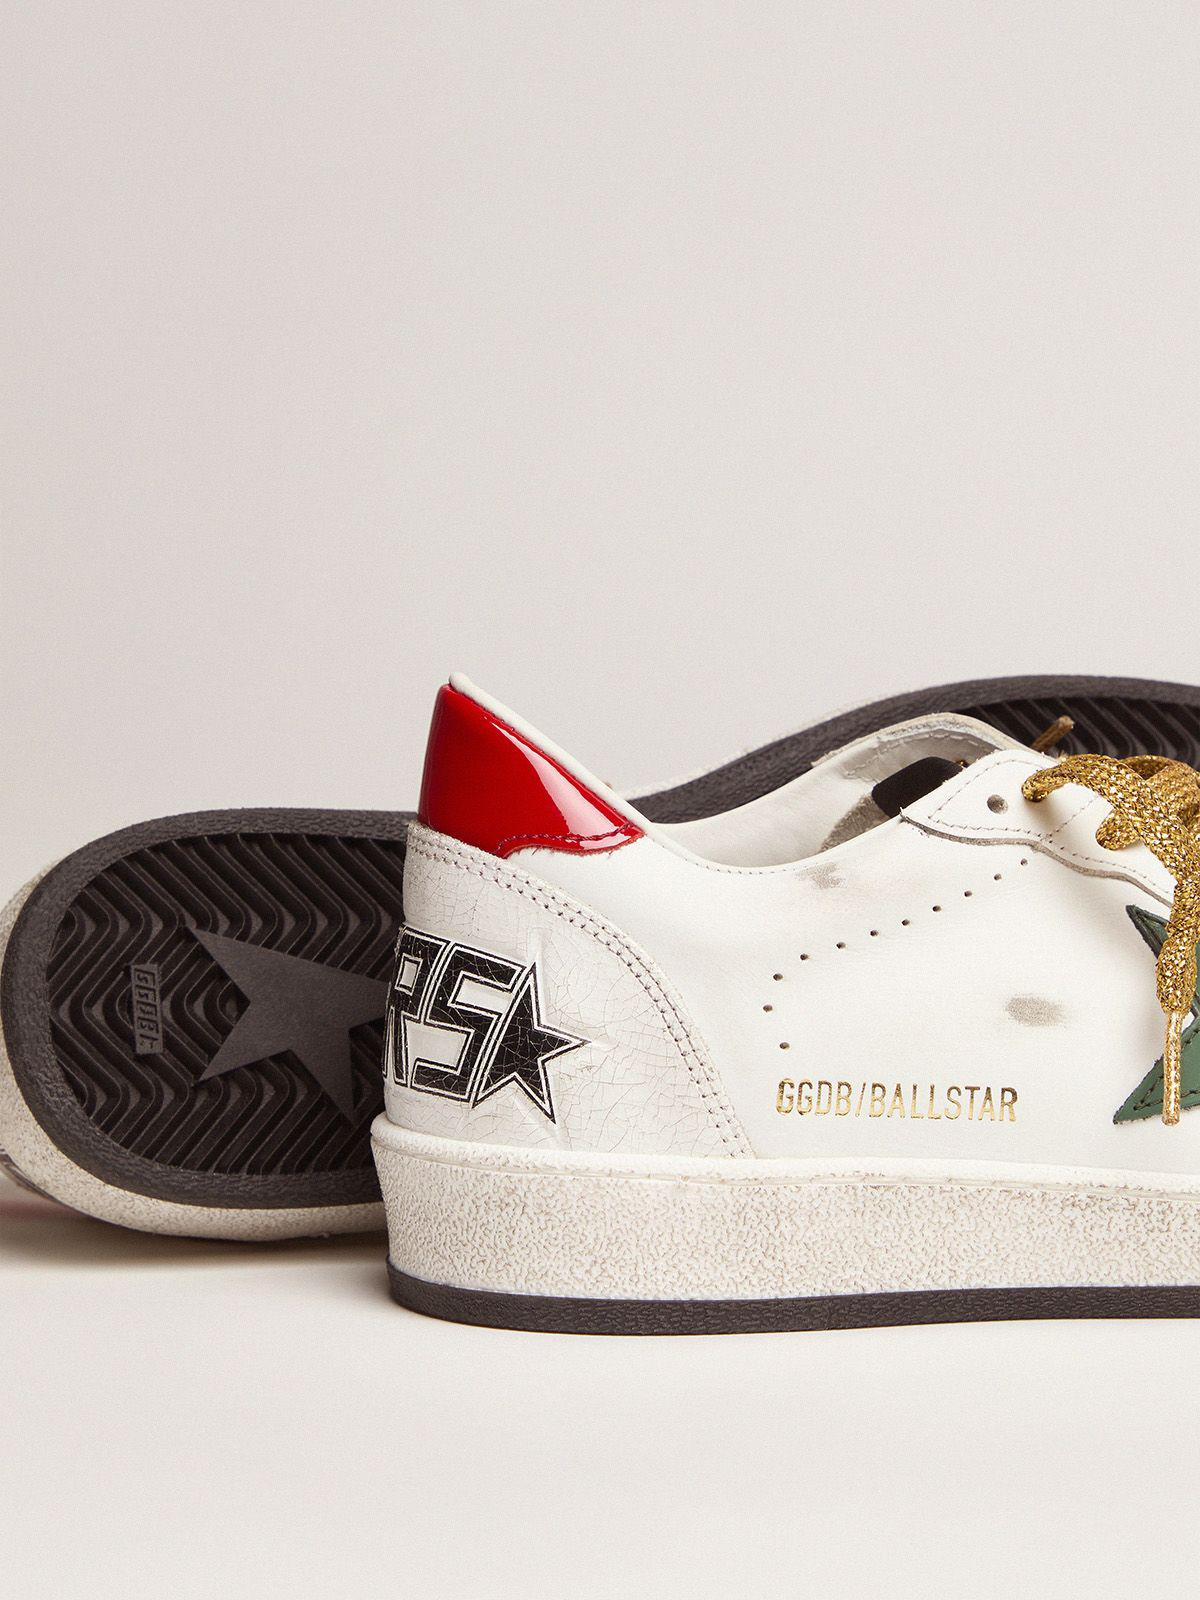 Ball Star sneakers with green star and red heel tab 2